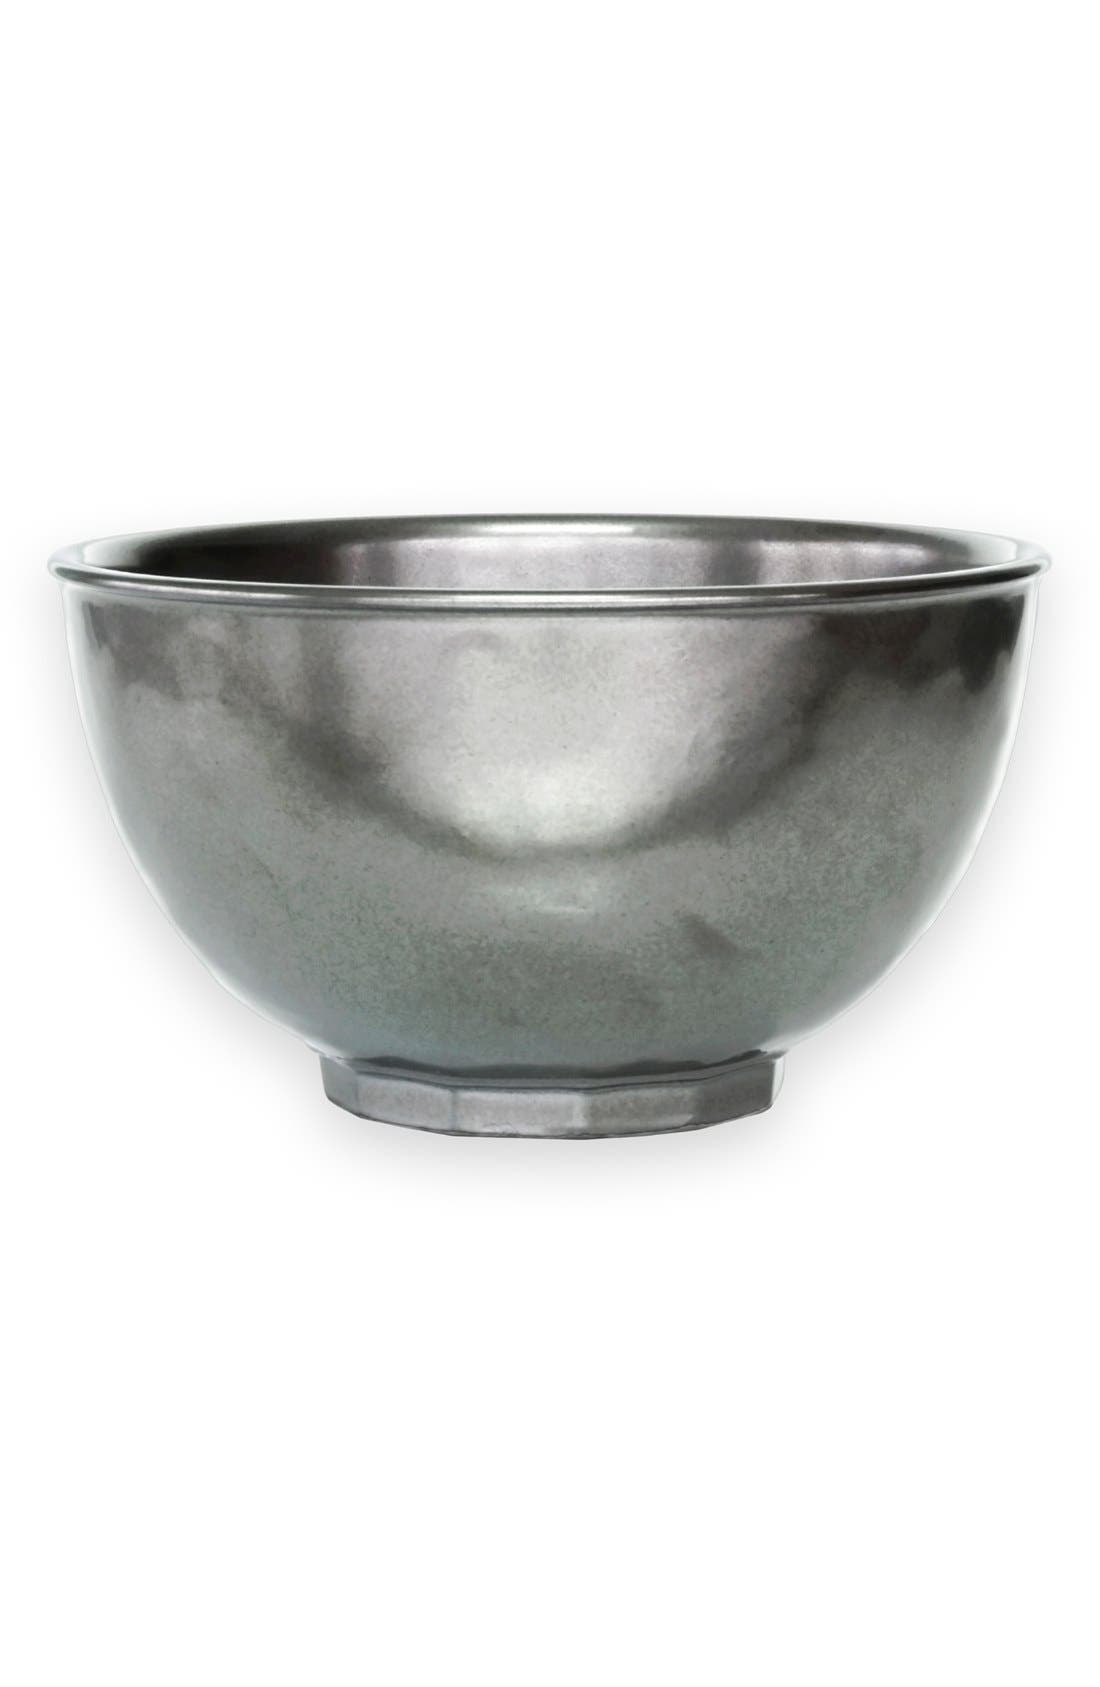 Juliska 'Pewter' Ceramic Bowl